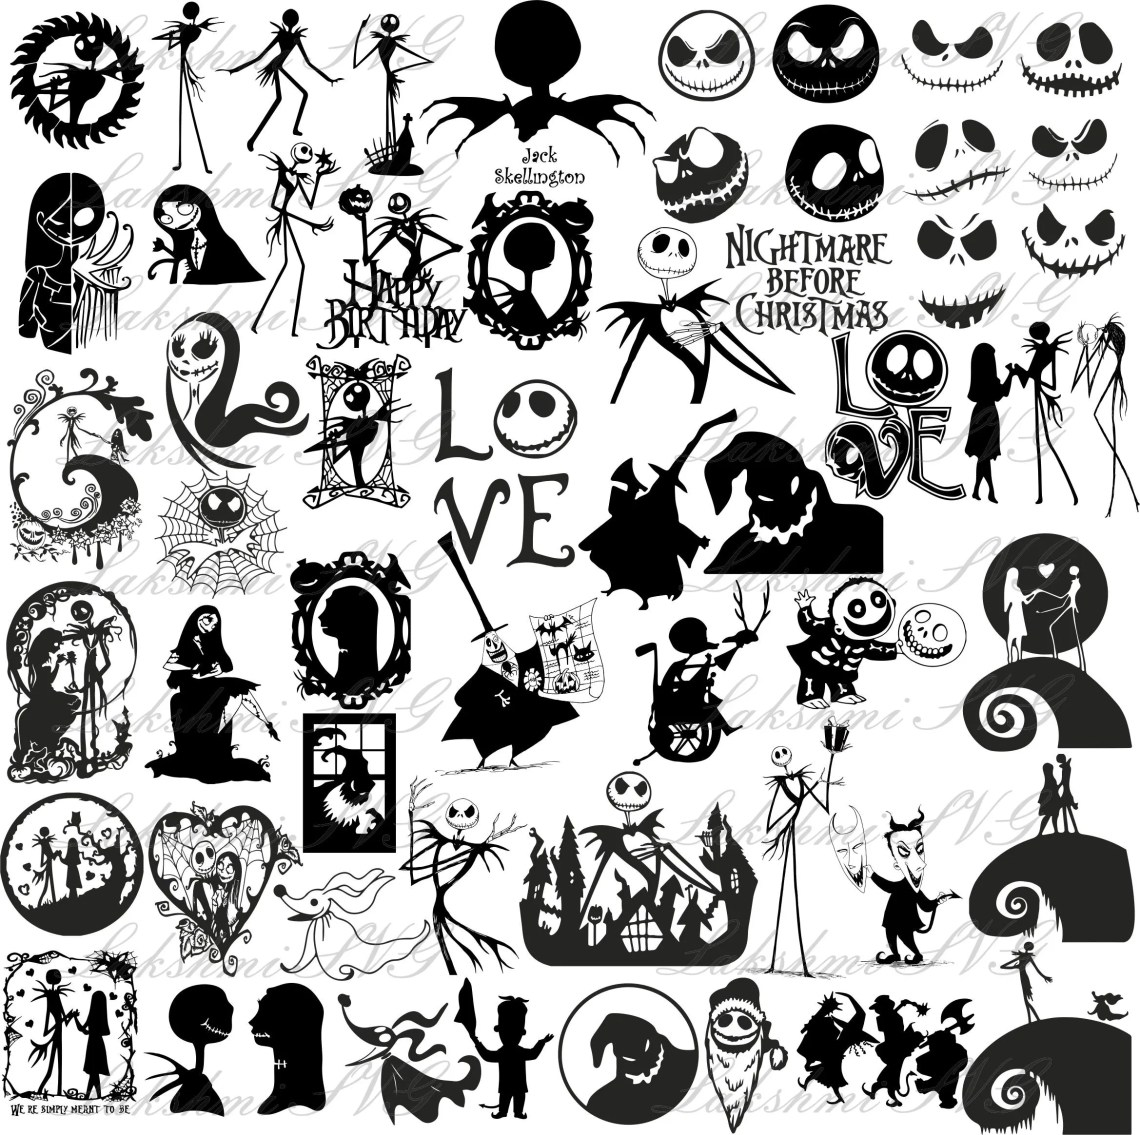 Download 57 Nightmare Before Christmas Silhouette SVG Files for